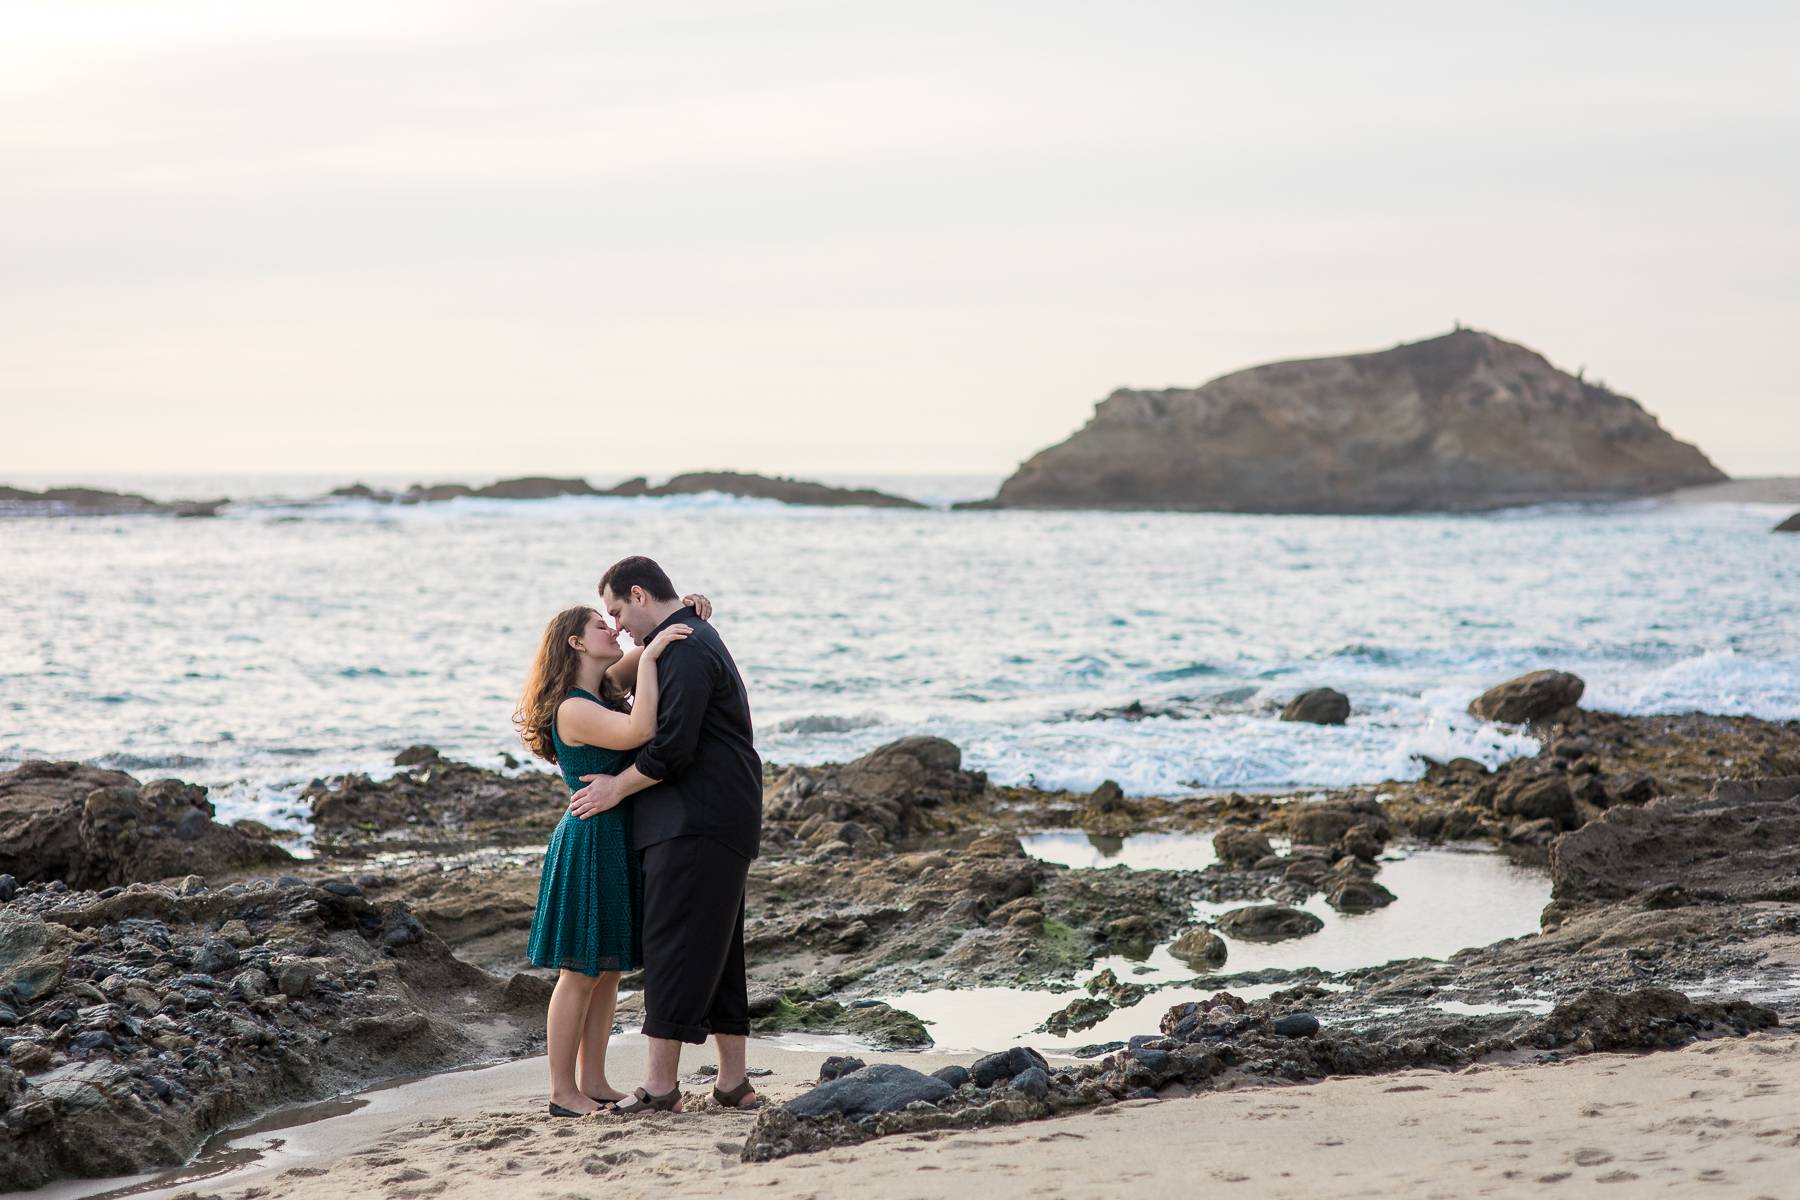 Beach engagement photography by Wyoming based photographer, Megan Lee Photo